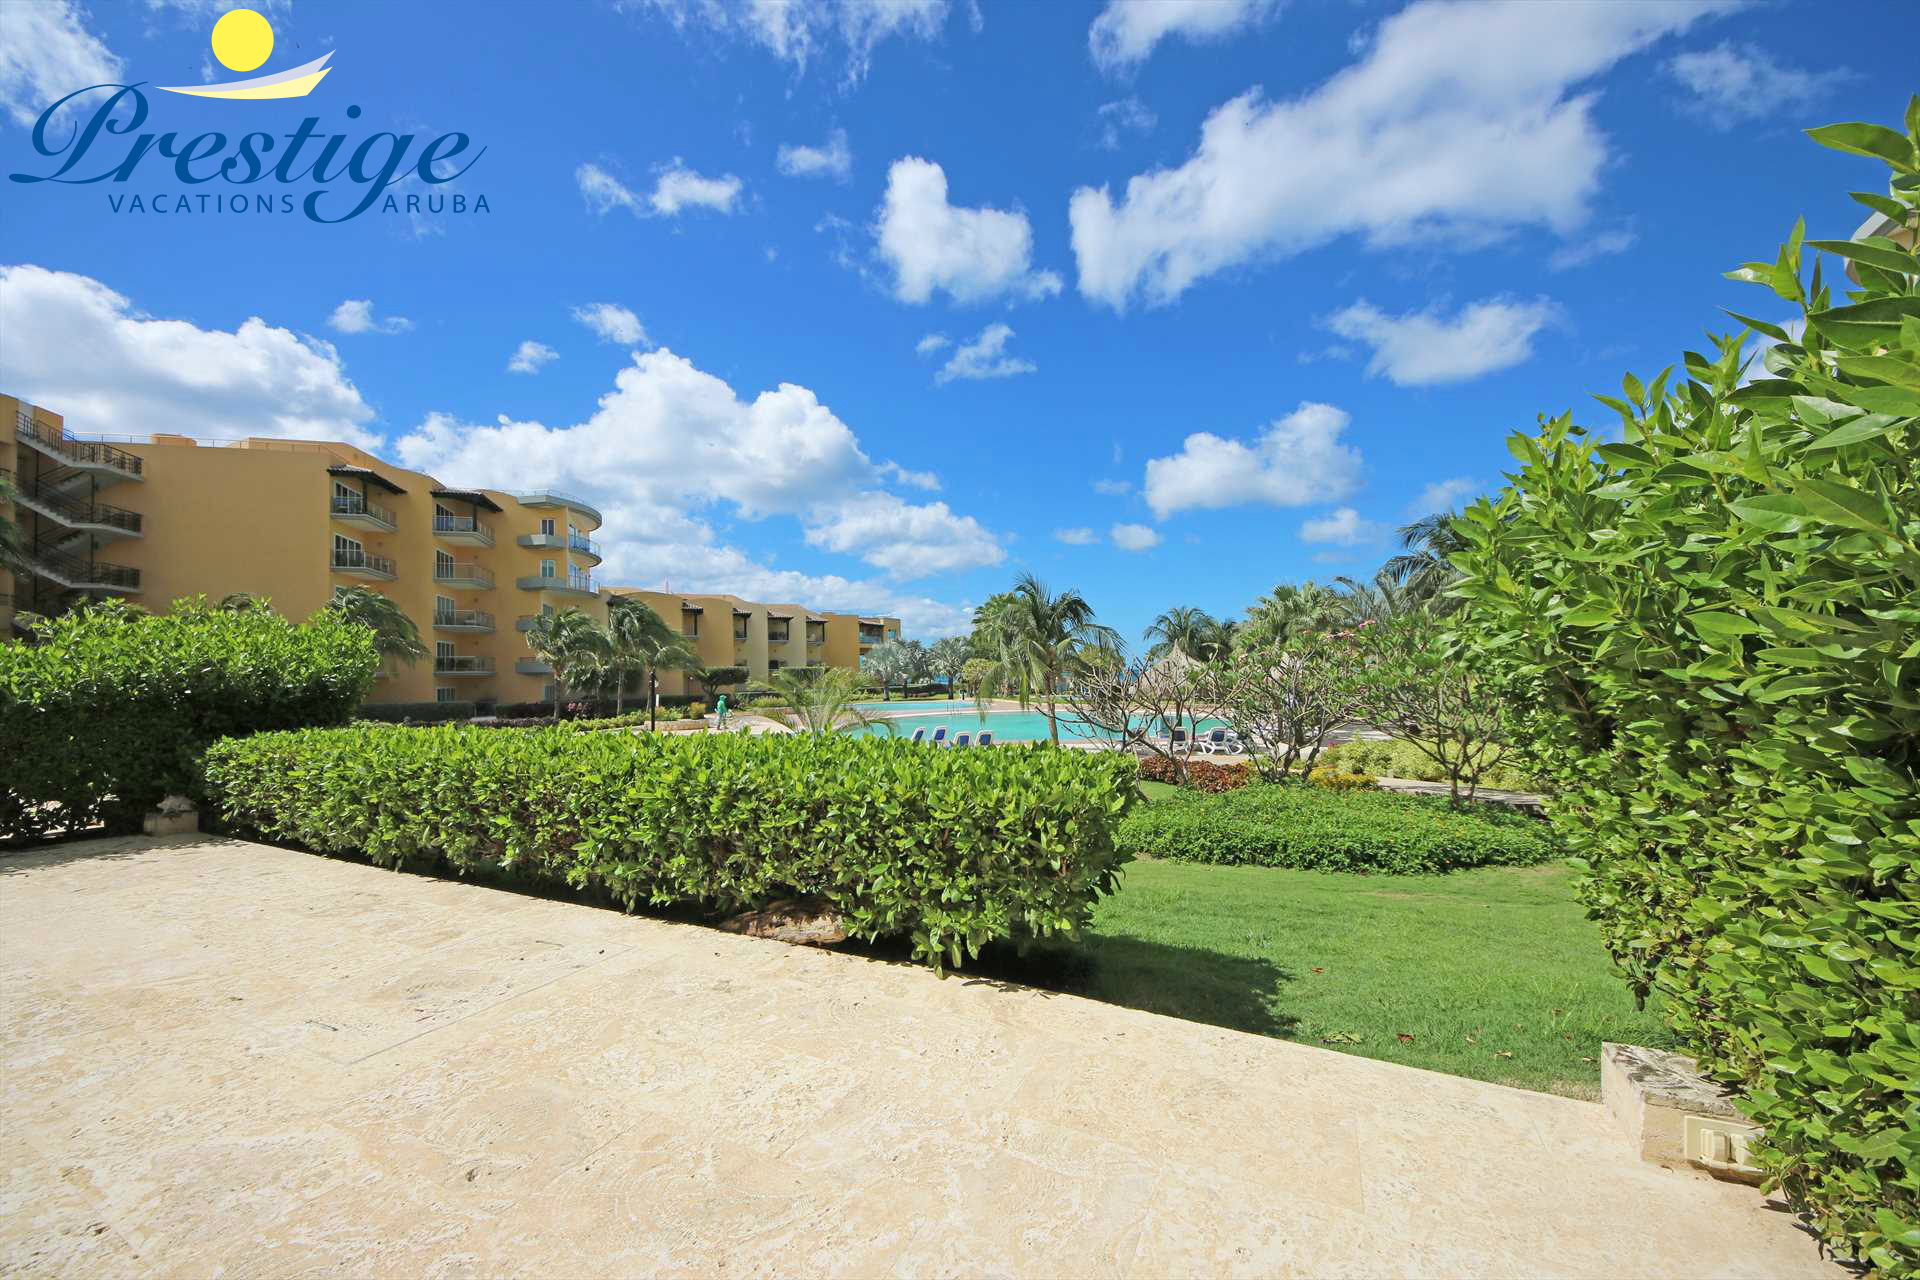 Eagle Beach and the resort pool is just a few steps away!